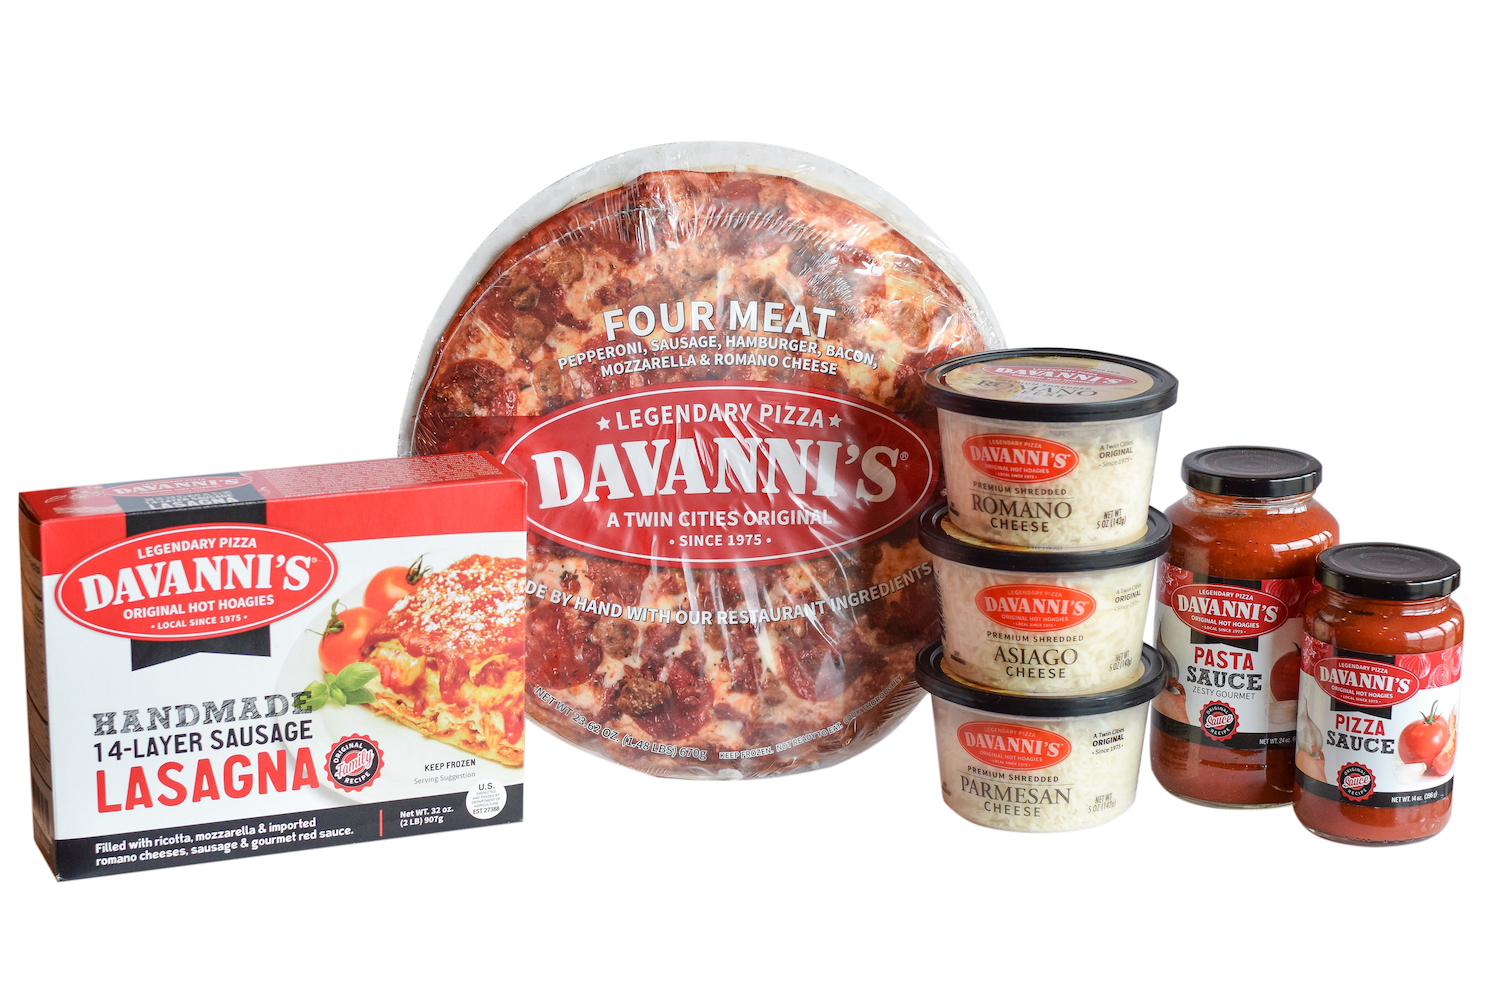 Davanni's frozen pizza and lasagna, shredded cheeses, pizza sauce and pasta sauce. Same restaurant ingredients!